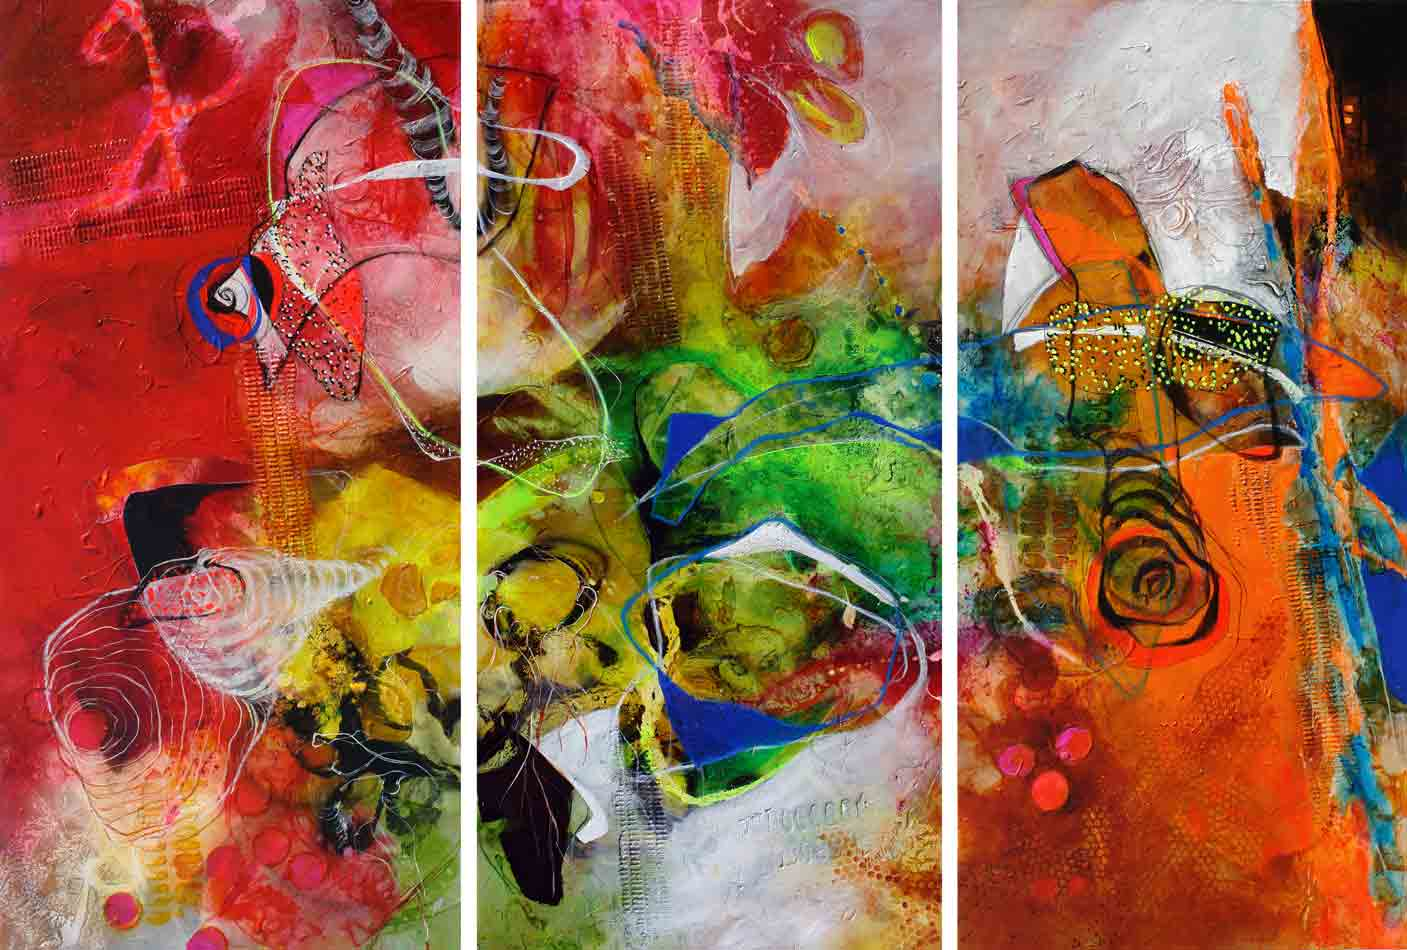 Camino sinuoso III to V-Triptych  (SOLD)